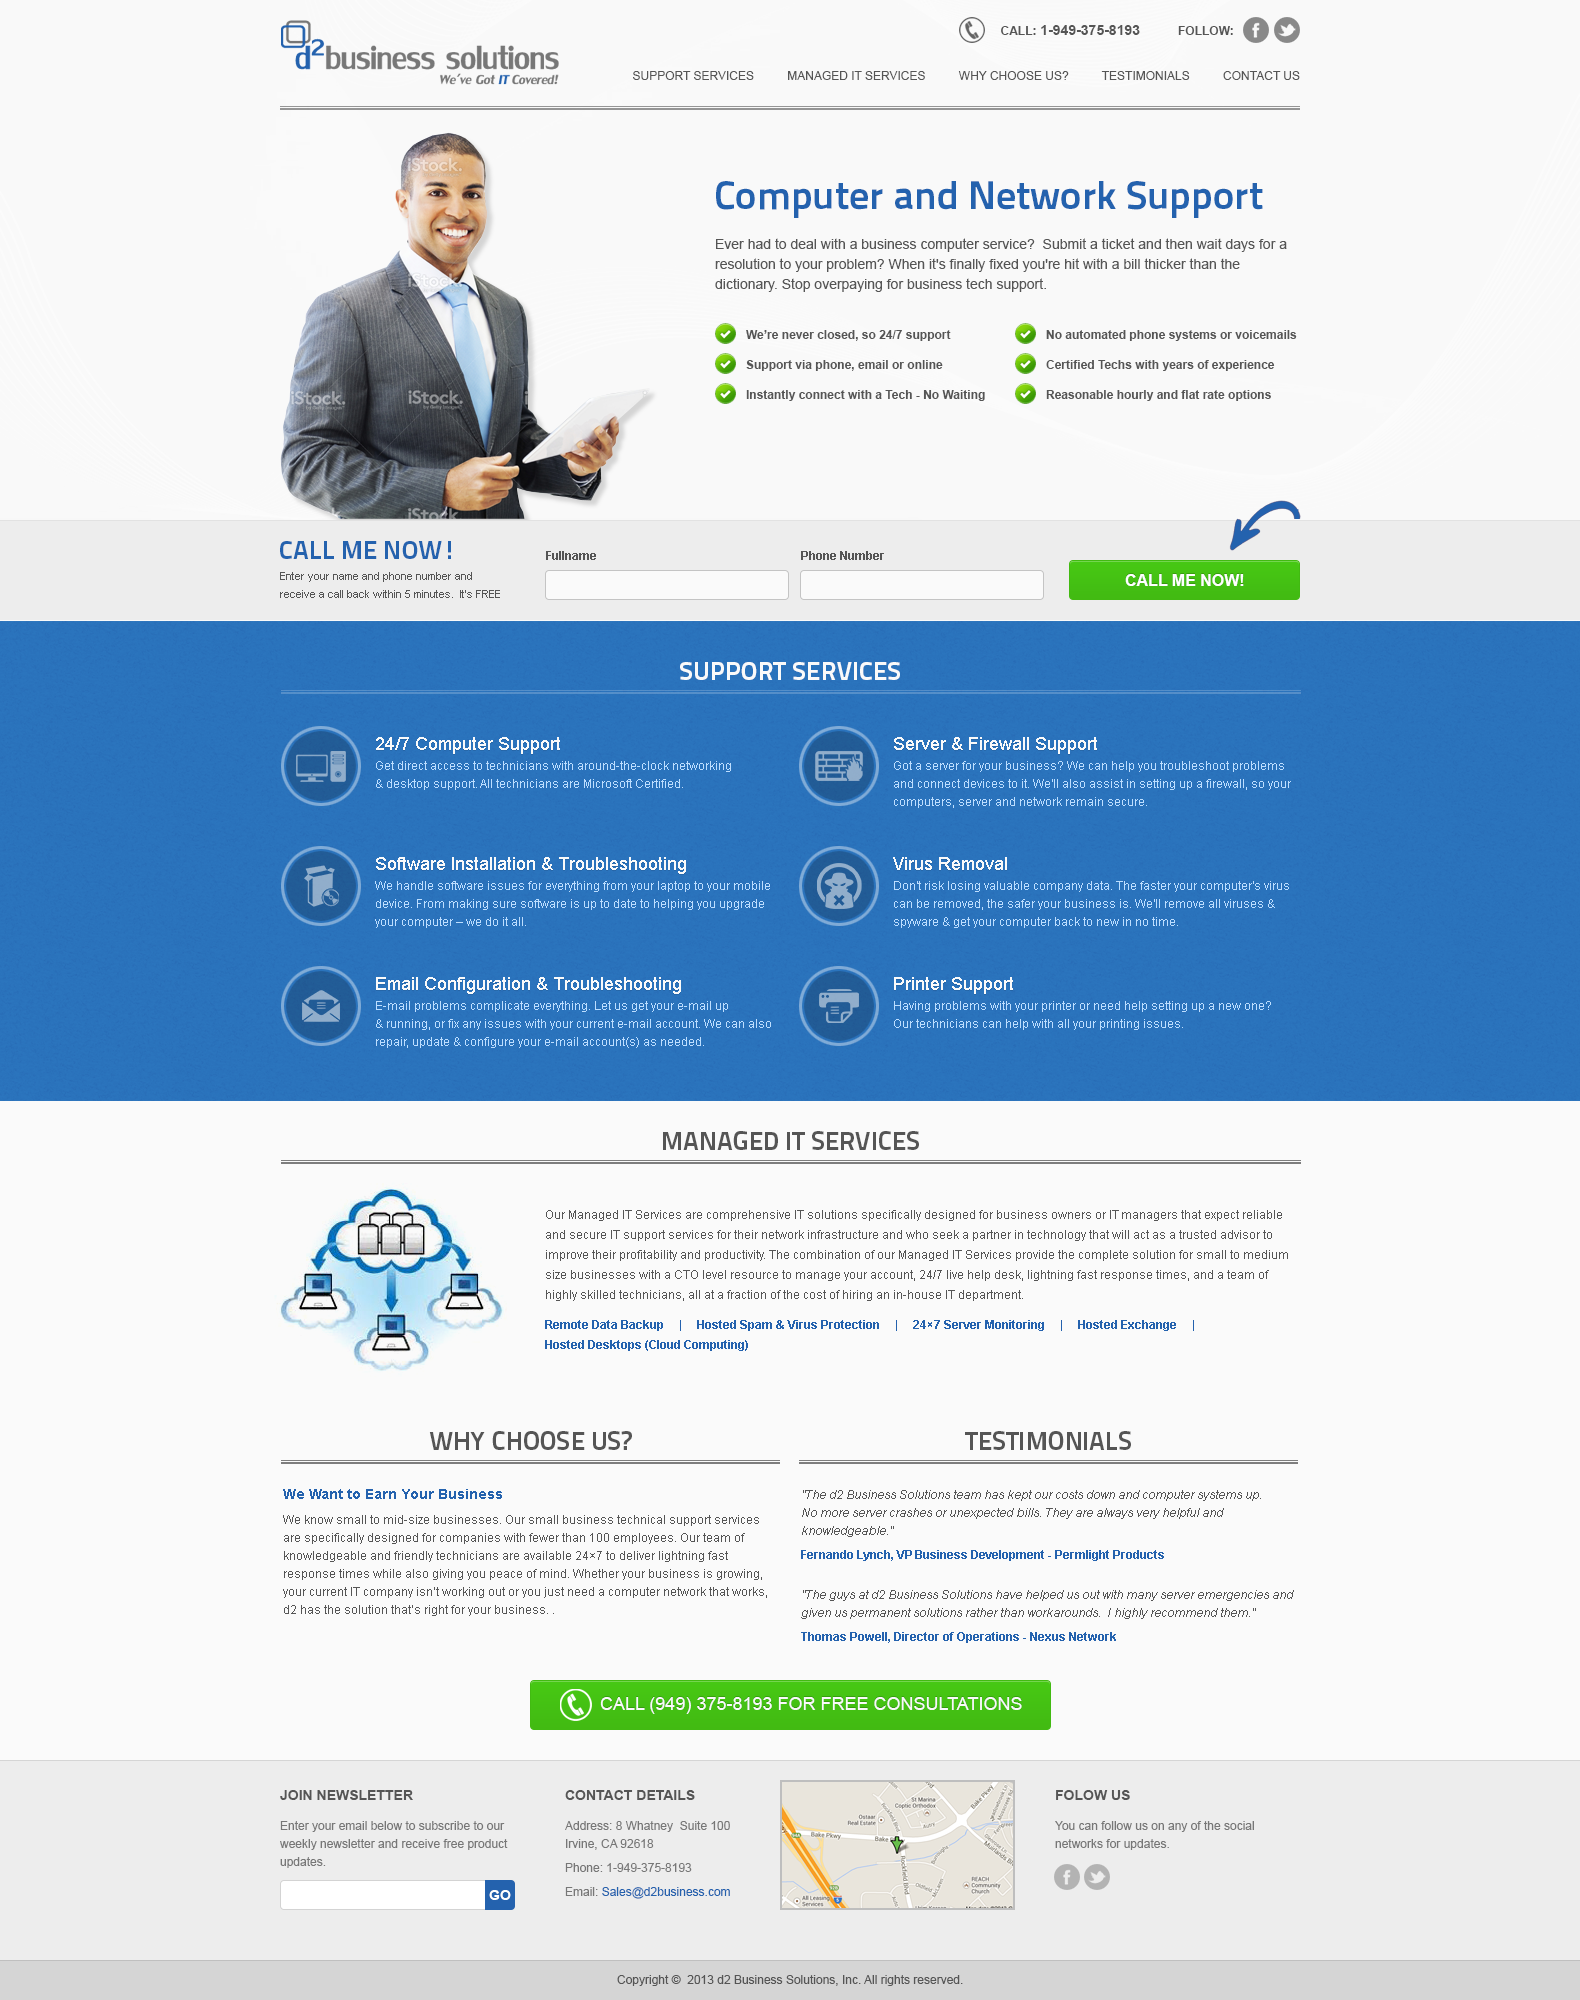 landing page for d2 Business Solutions